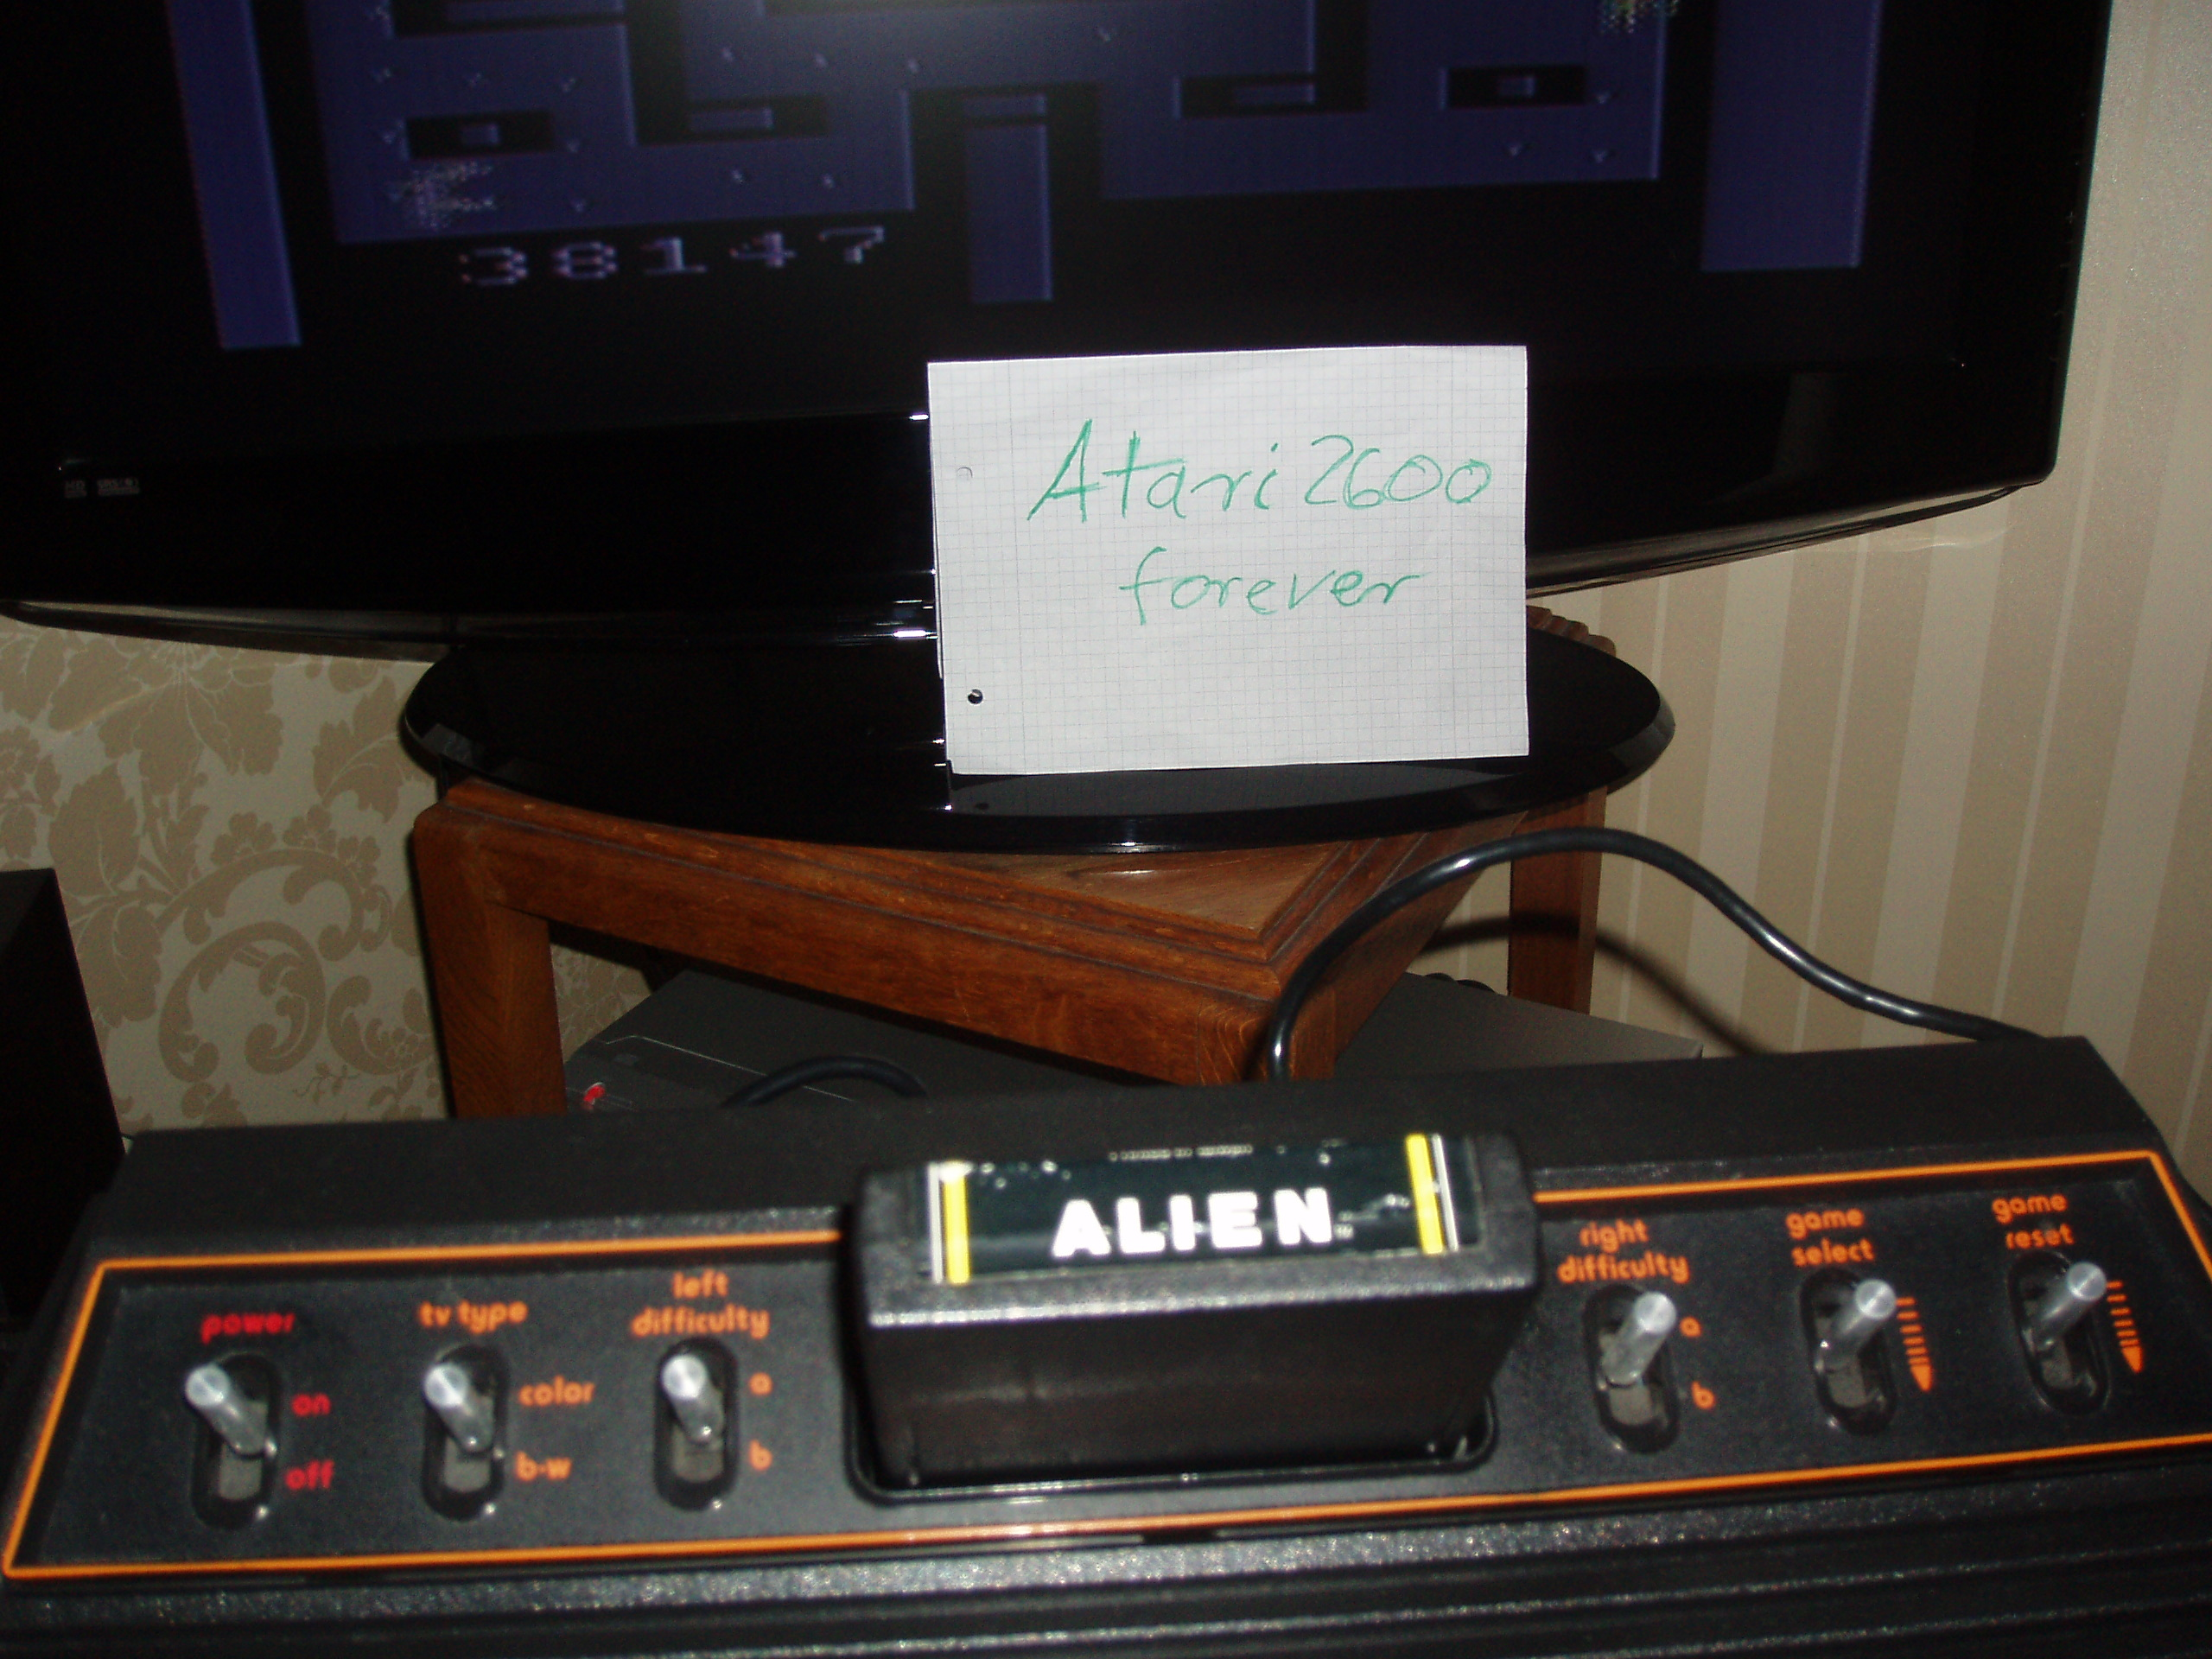 atari2600forever: Alien (Atari 2600 Expert/A) 38,147 points on 2015-11-24 02:14:52